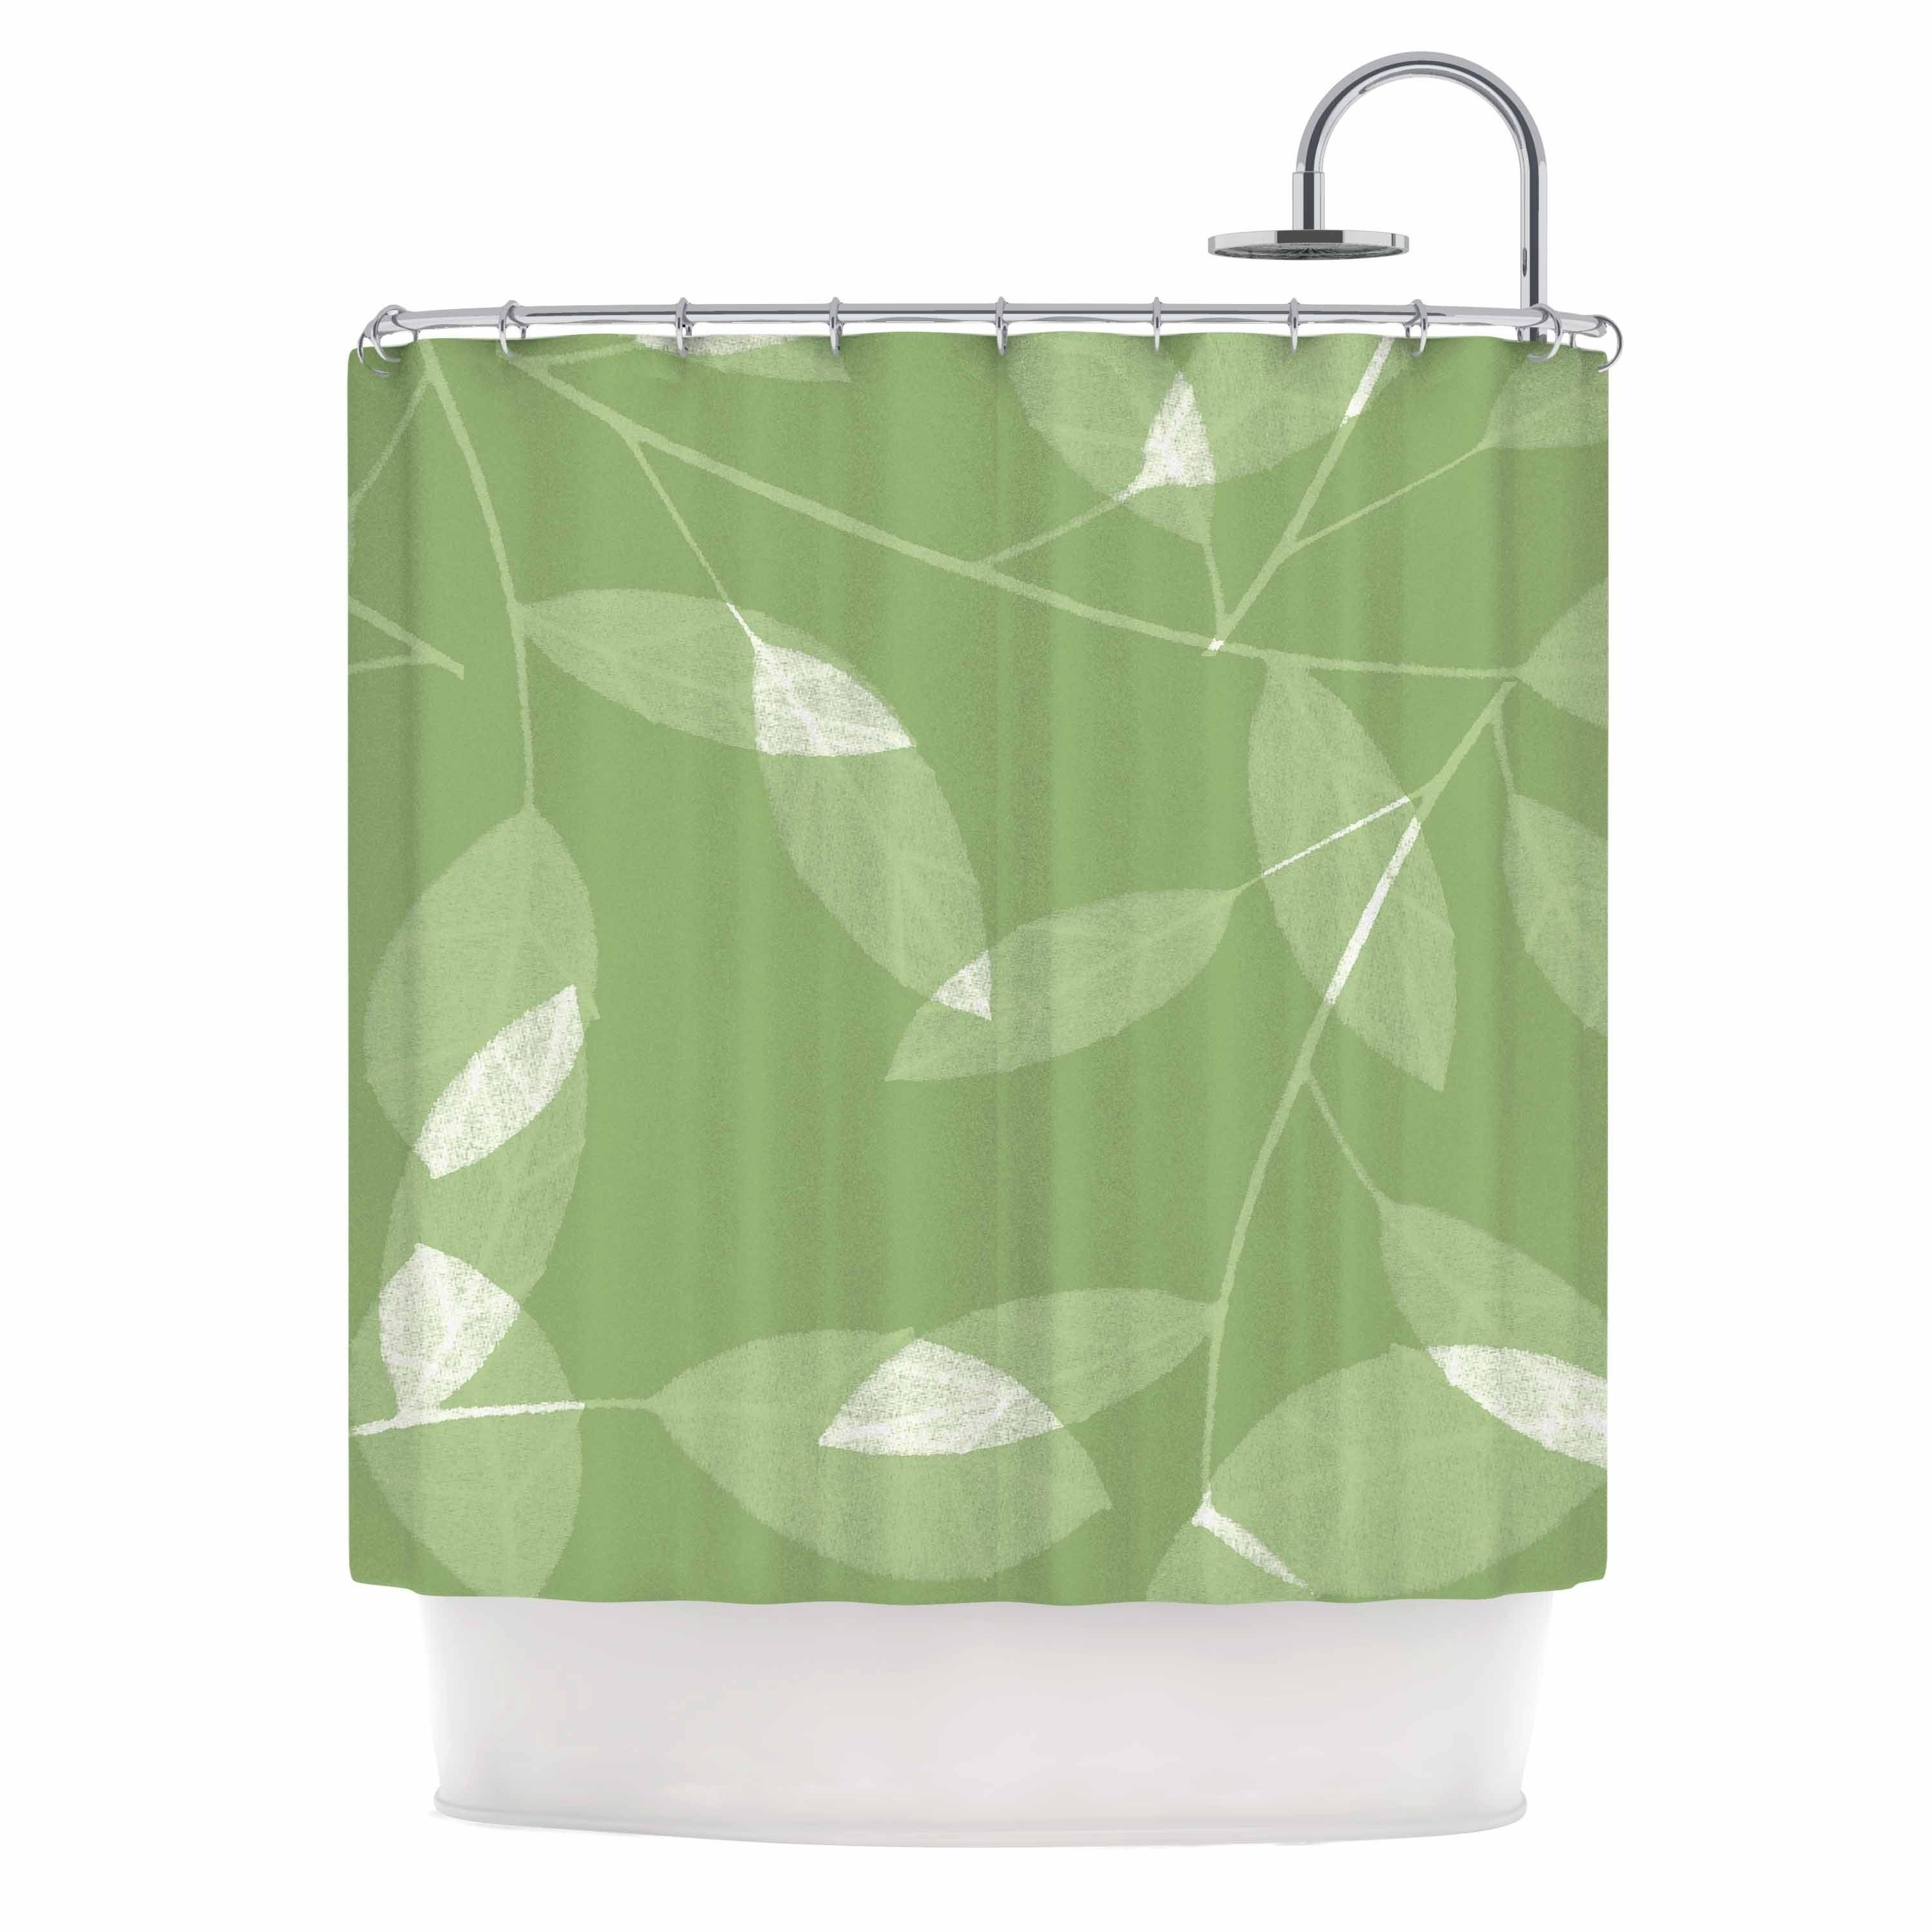 Alison Coxon Leaf Olive Green Shower Curtain Kess Inhouse In